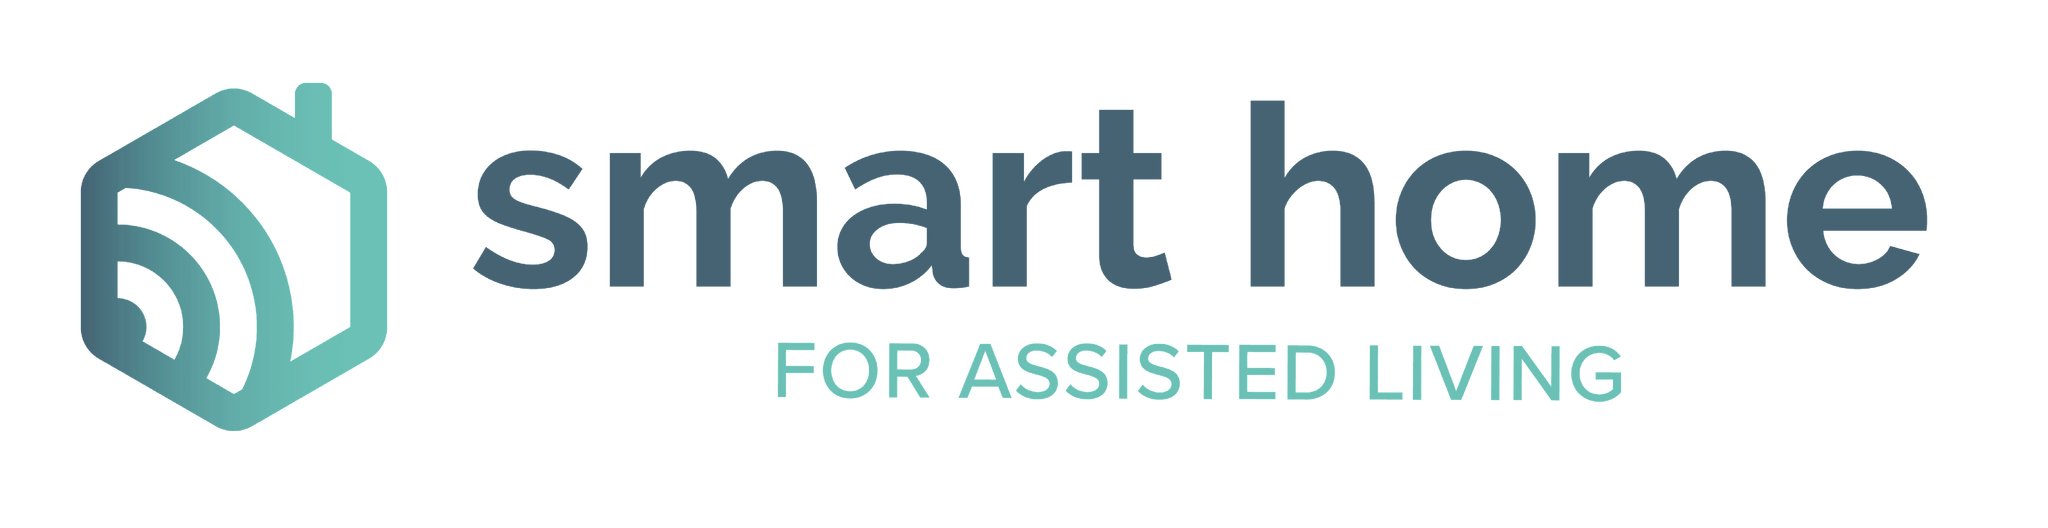 Smart Home for Assisted Living logo